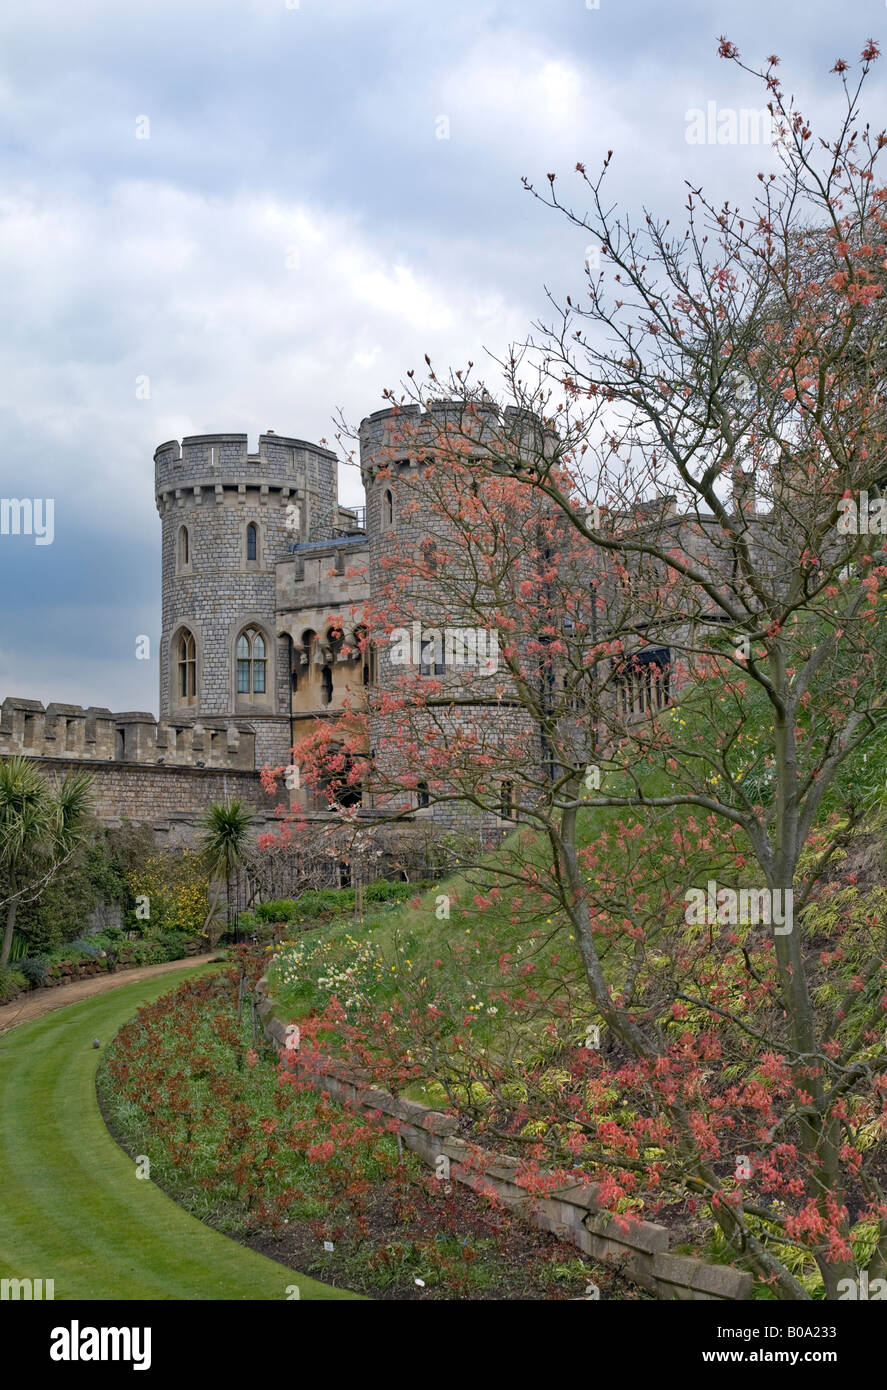 Windsor Castle, Berkshire, England - Stock Image